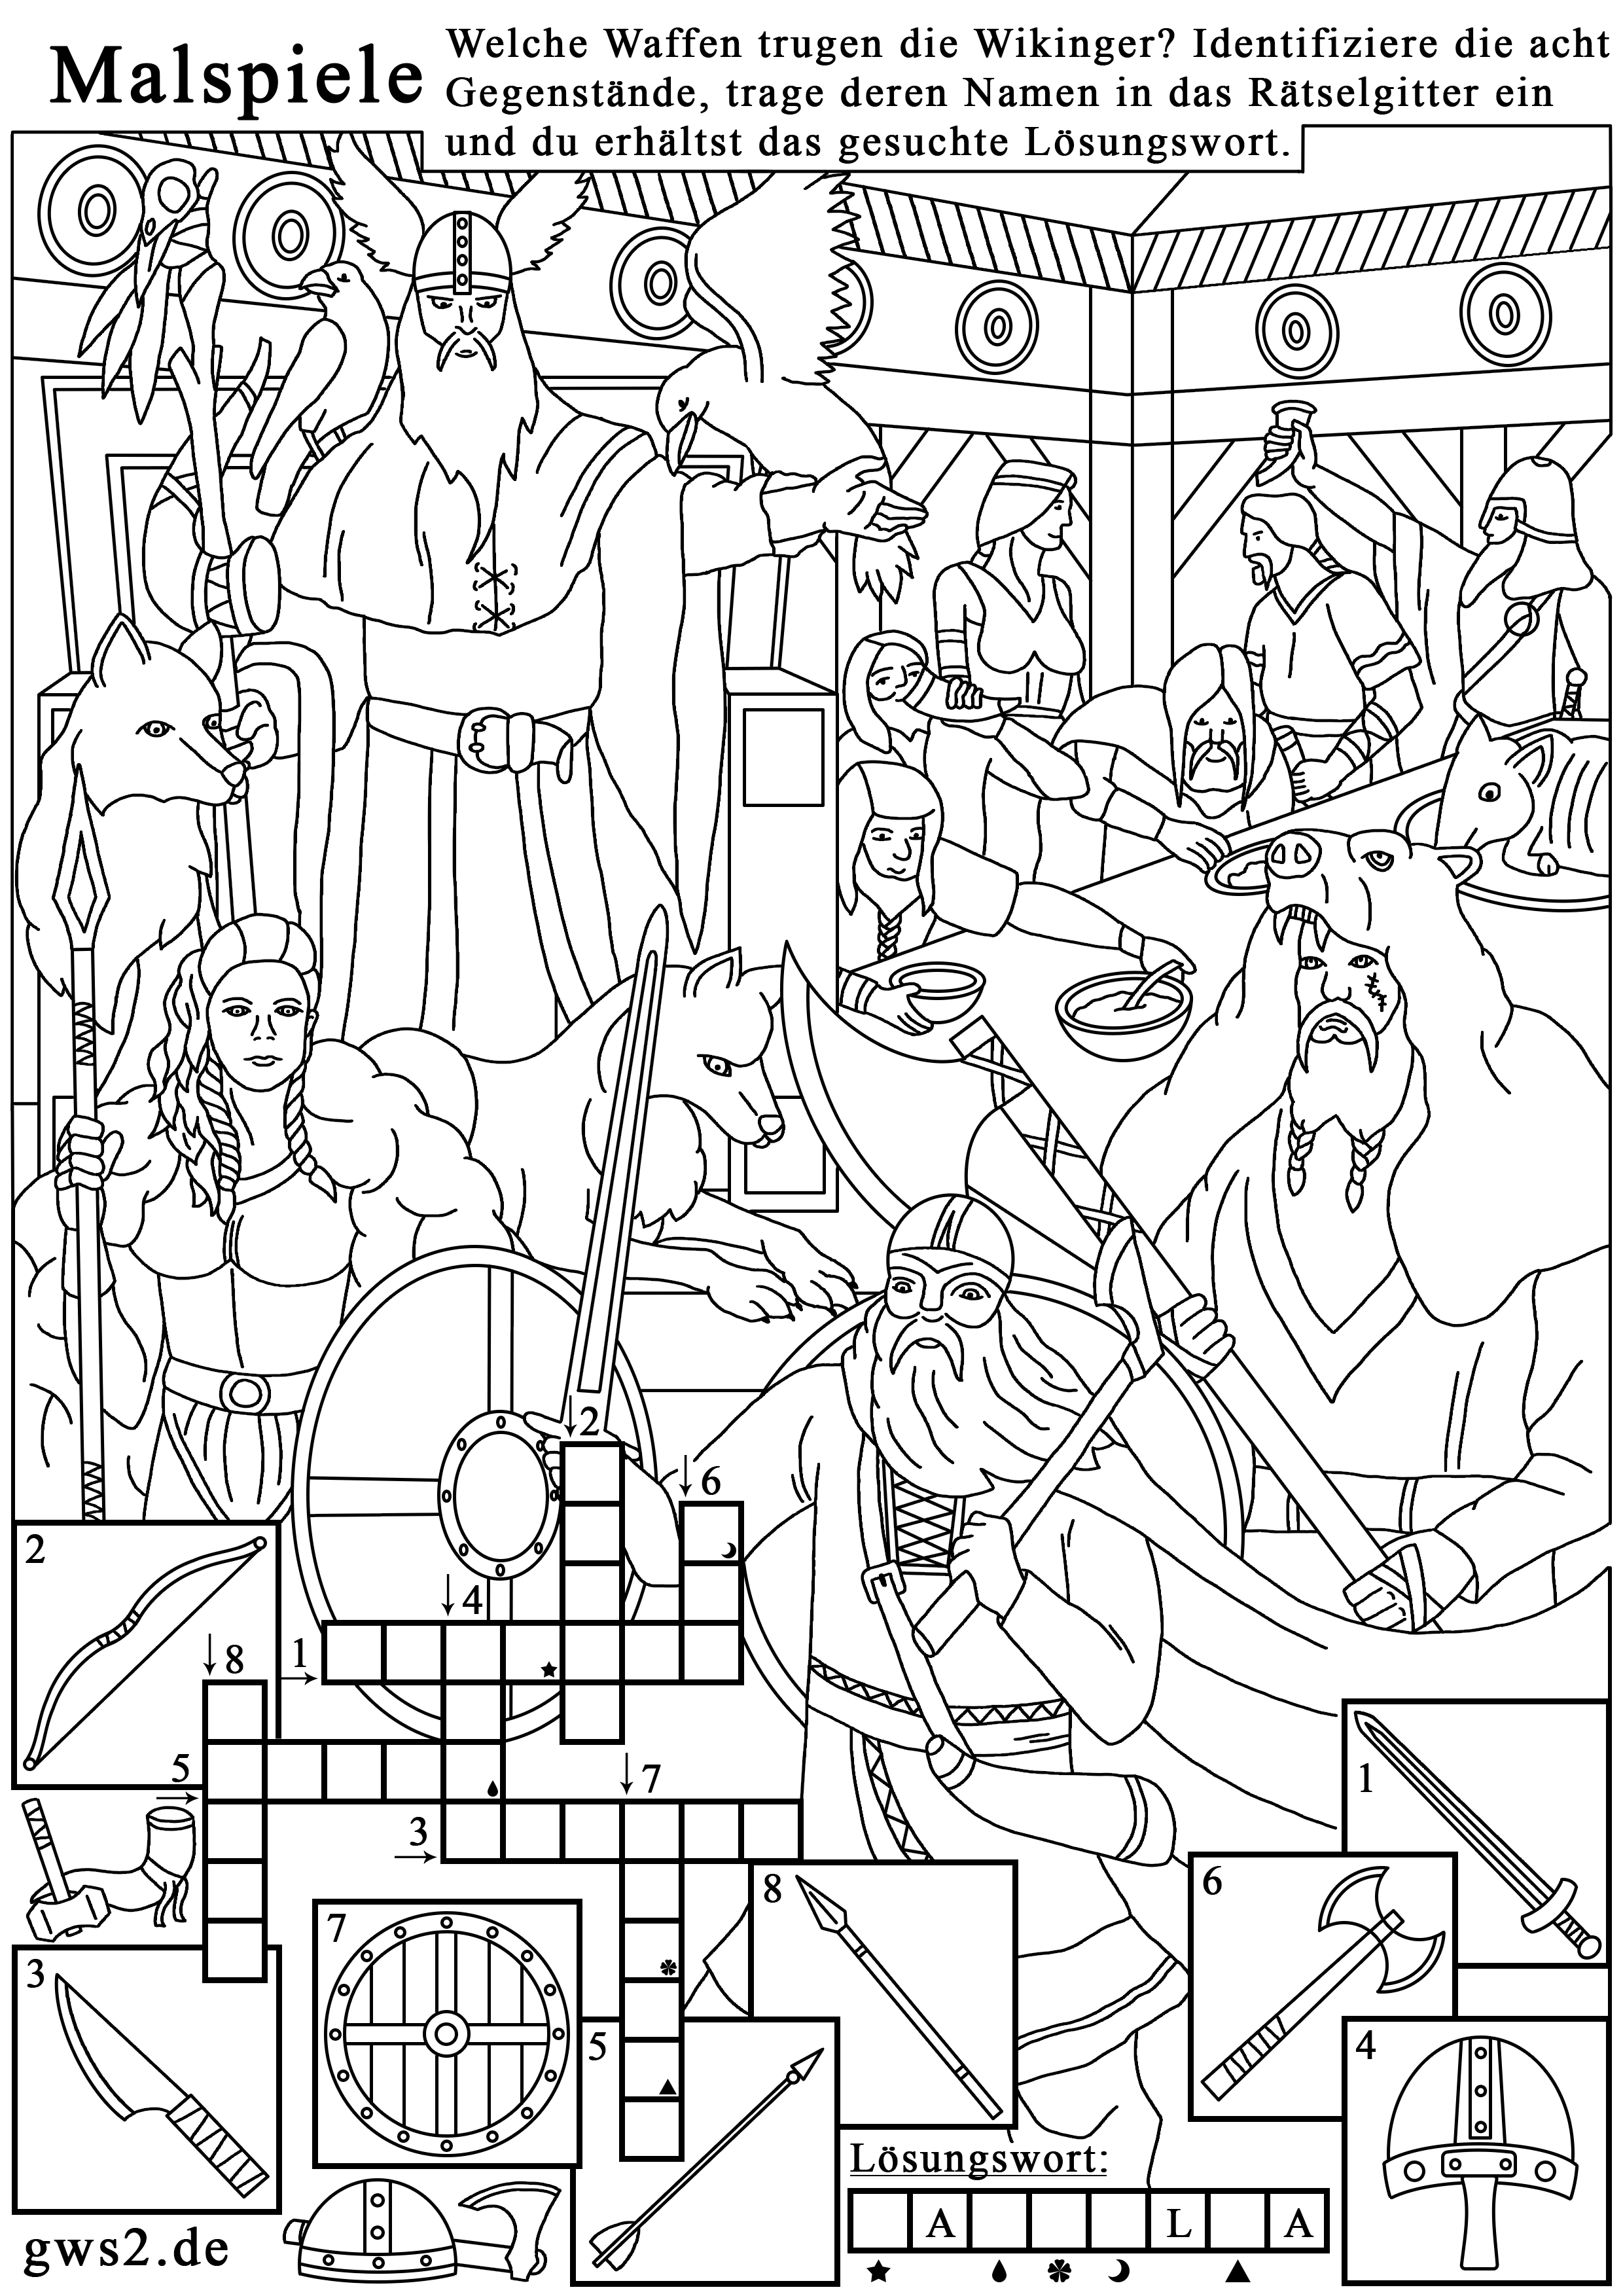 Ave-Maria-University, Florida (Academy of History): The Weapons of the Vikings. Germanic customs and religions. Teaching Material for Students, recommended by Ph.D. Ingmar Rentzhog. The scientific worksheet was created by Veronika Vetter. This is a Bavarian Valkyrie, who brings white Anglo-Saxons to Walhalla after death